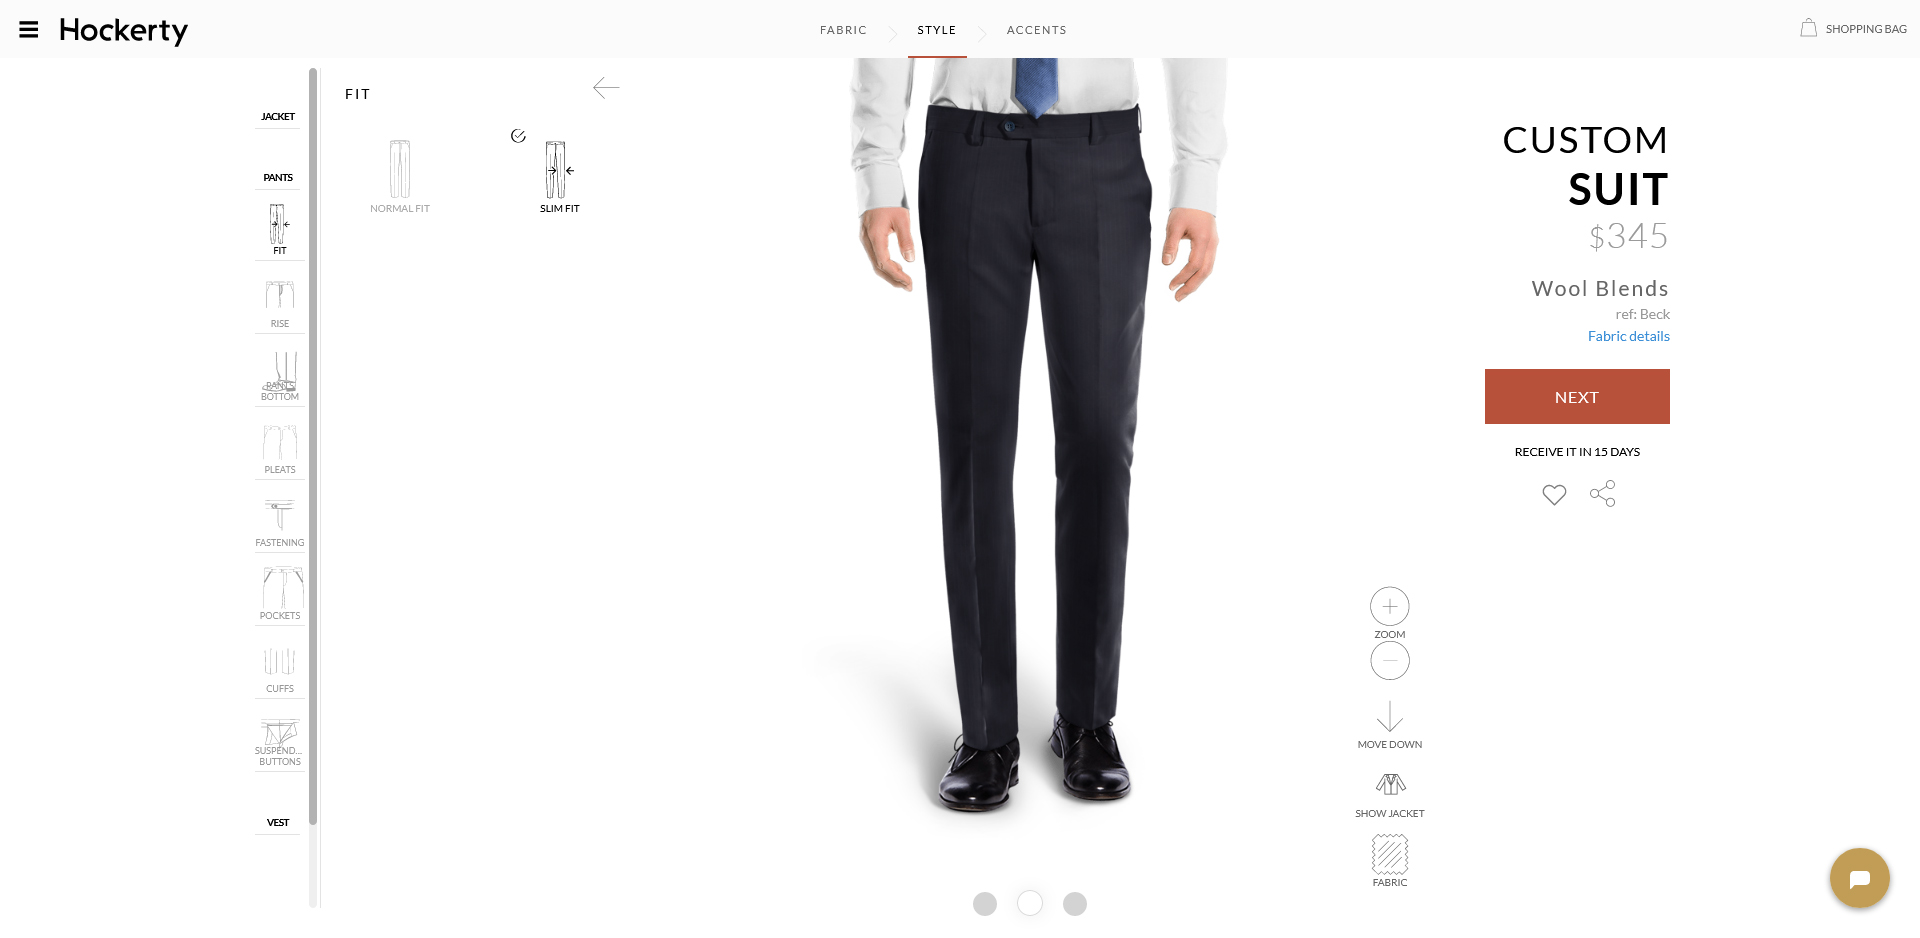 Hockerty suit pants style options